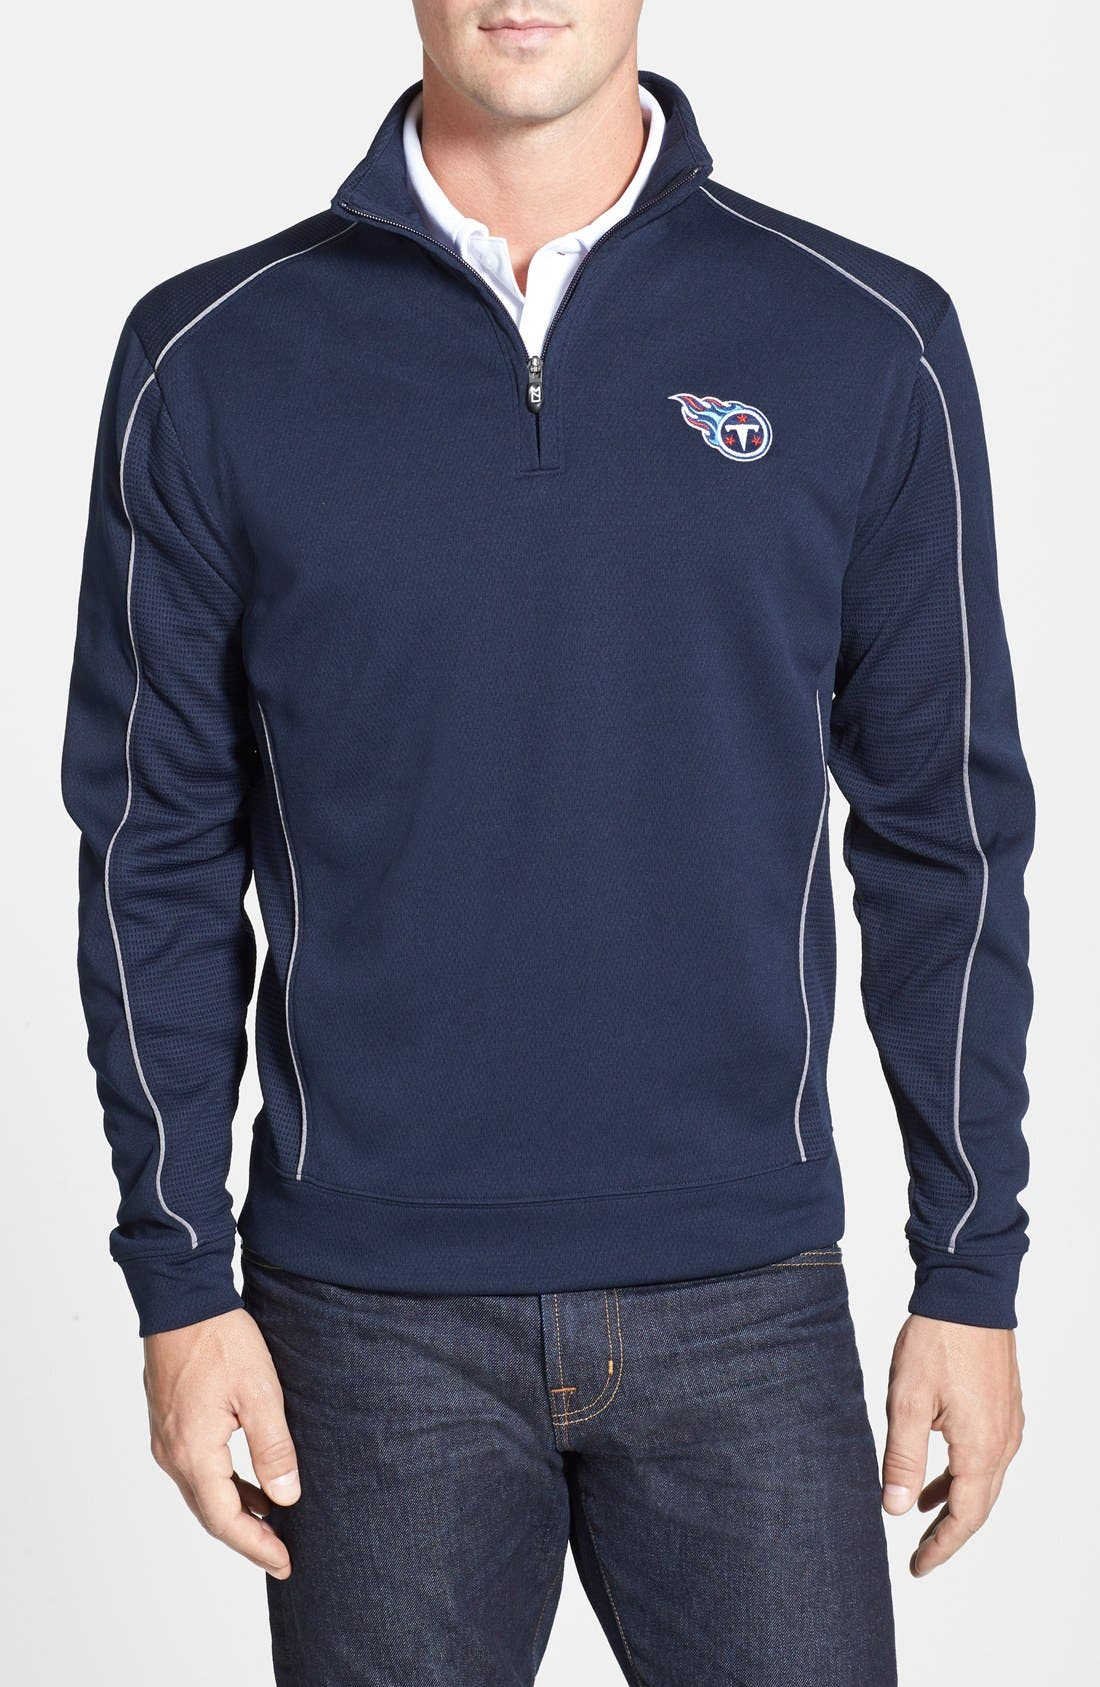 Main Image - Cutter & Buck Tennessee Titans - Edge DryTec Moisture Wicking Half Zip Pullover